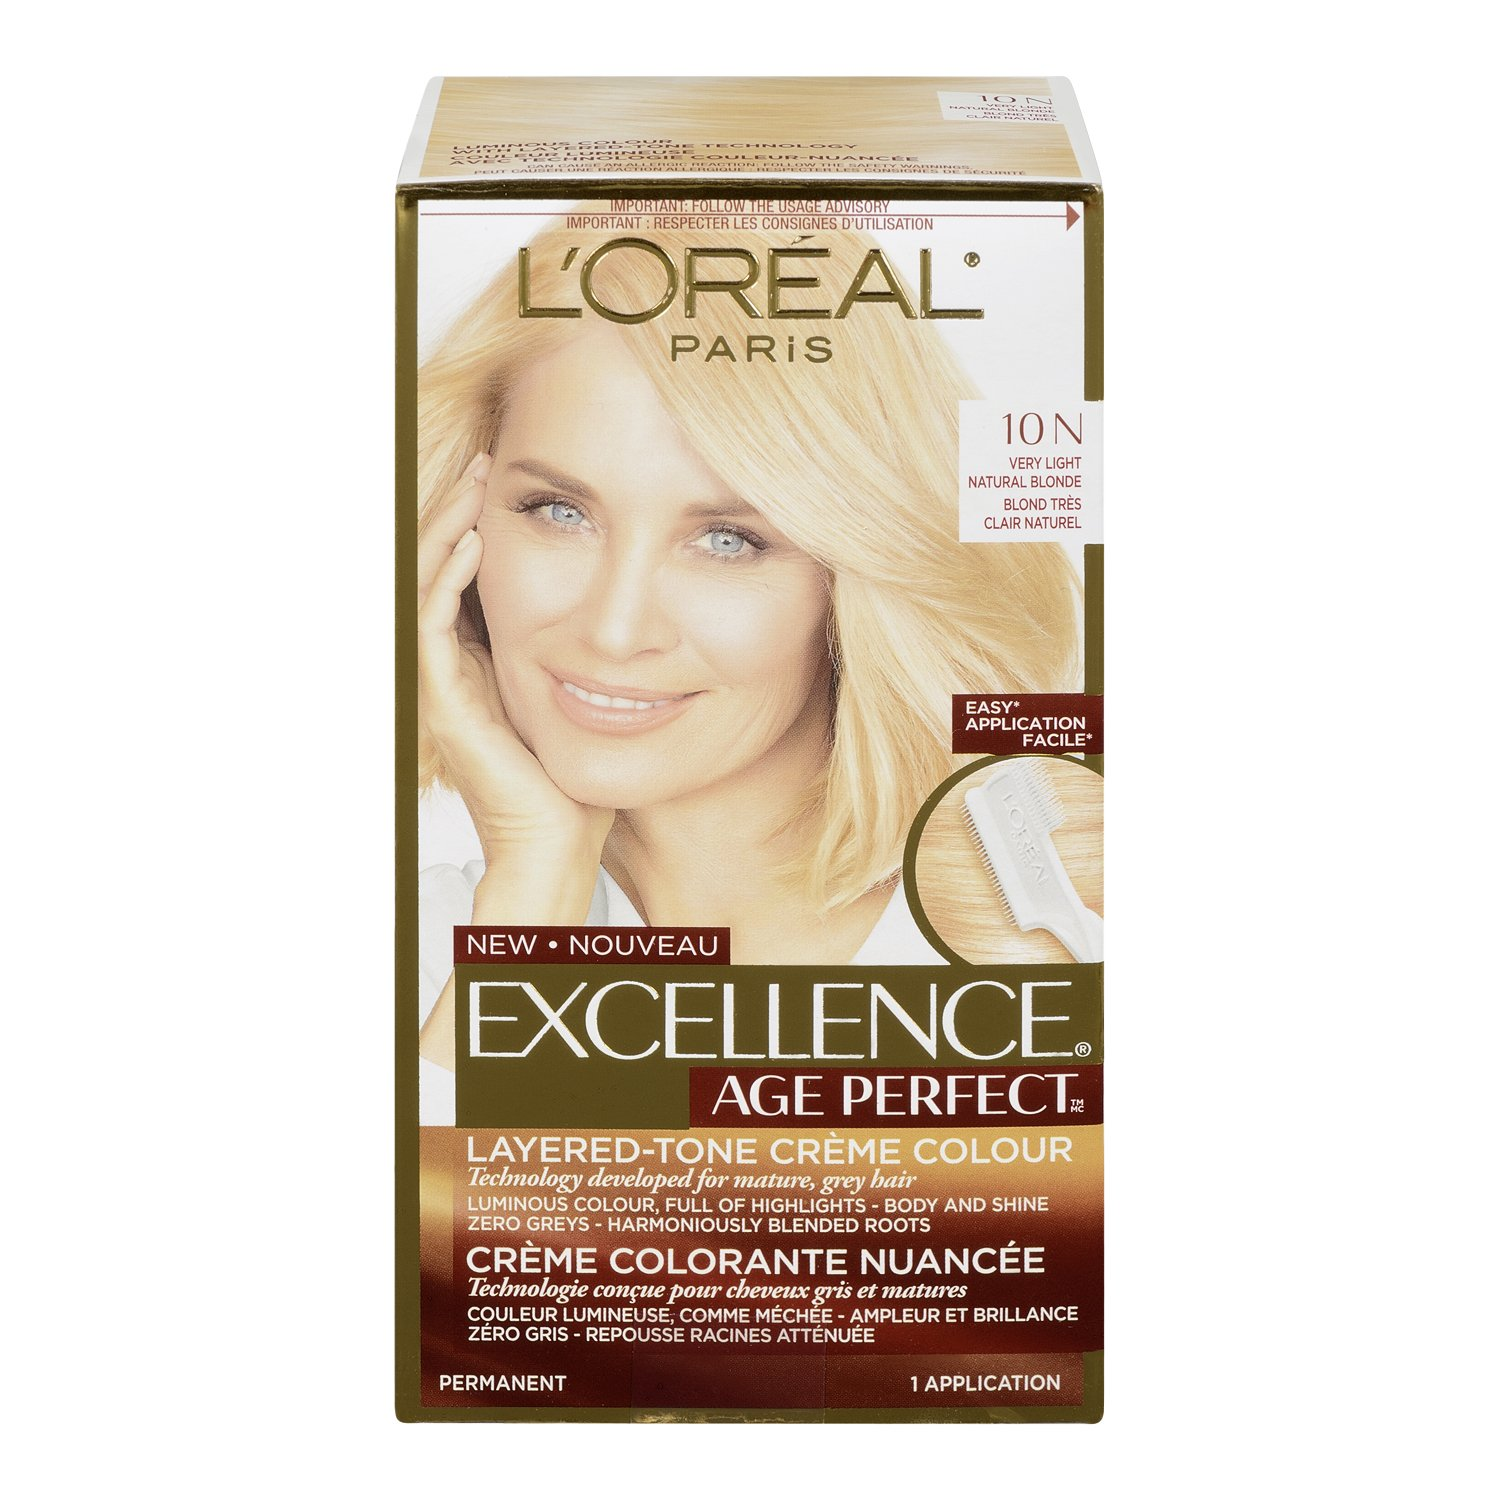 Amazon loral paris age perfect permanent hair color 10n amazon loral paris age perfect permanent hair color 10n very light natural blonde beauty geenschuldenfo Images